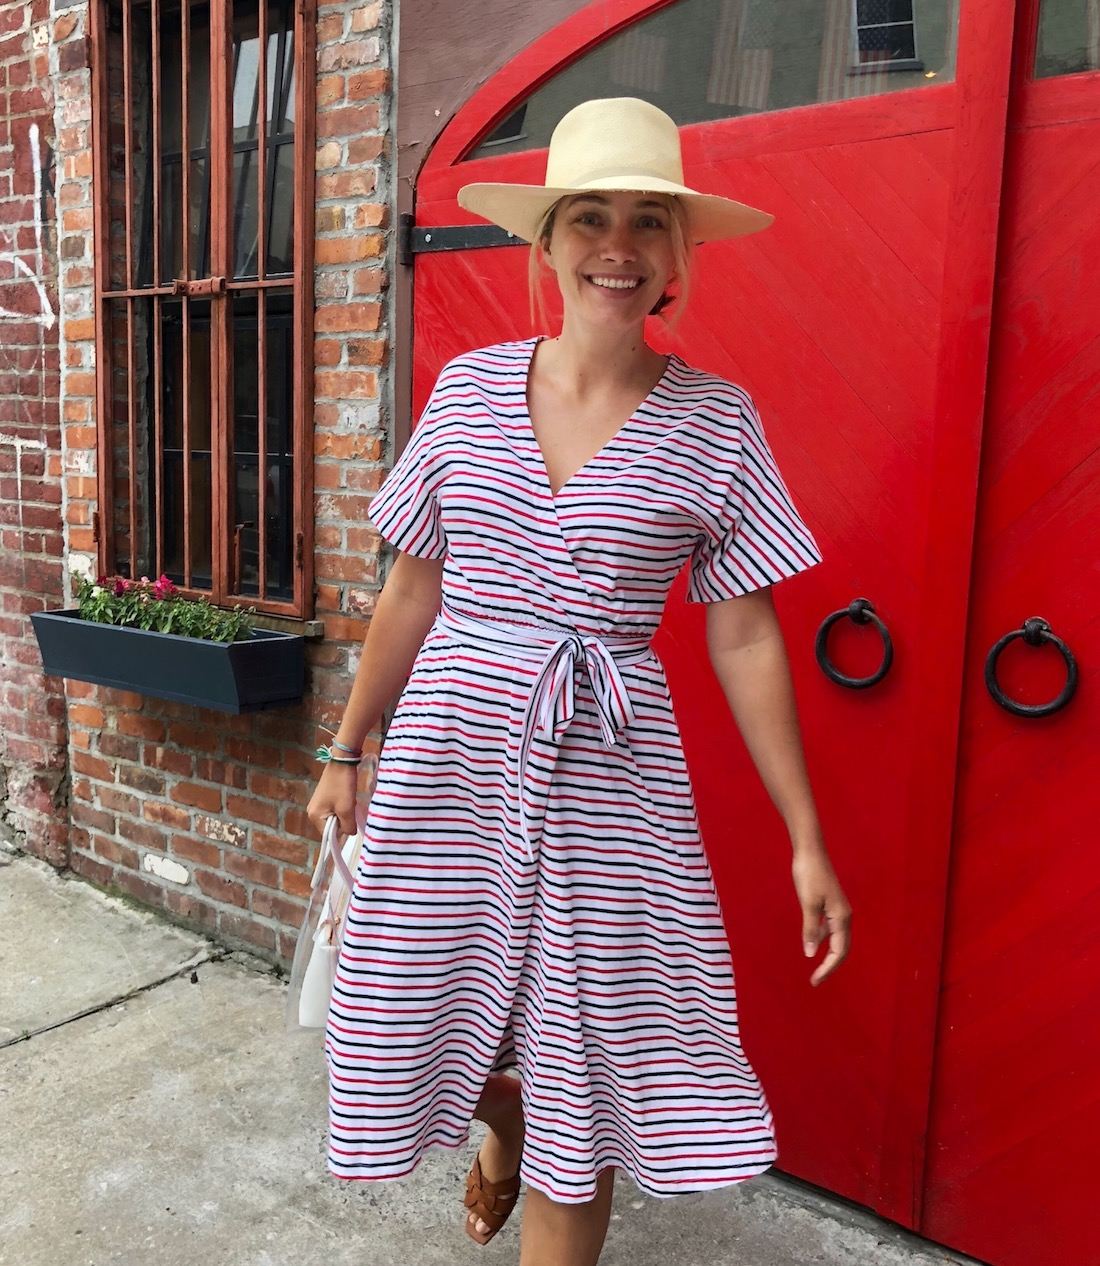 mds stripes dress for the 4th of july